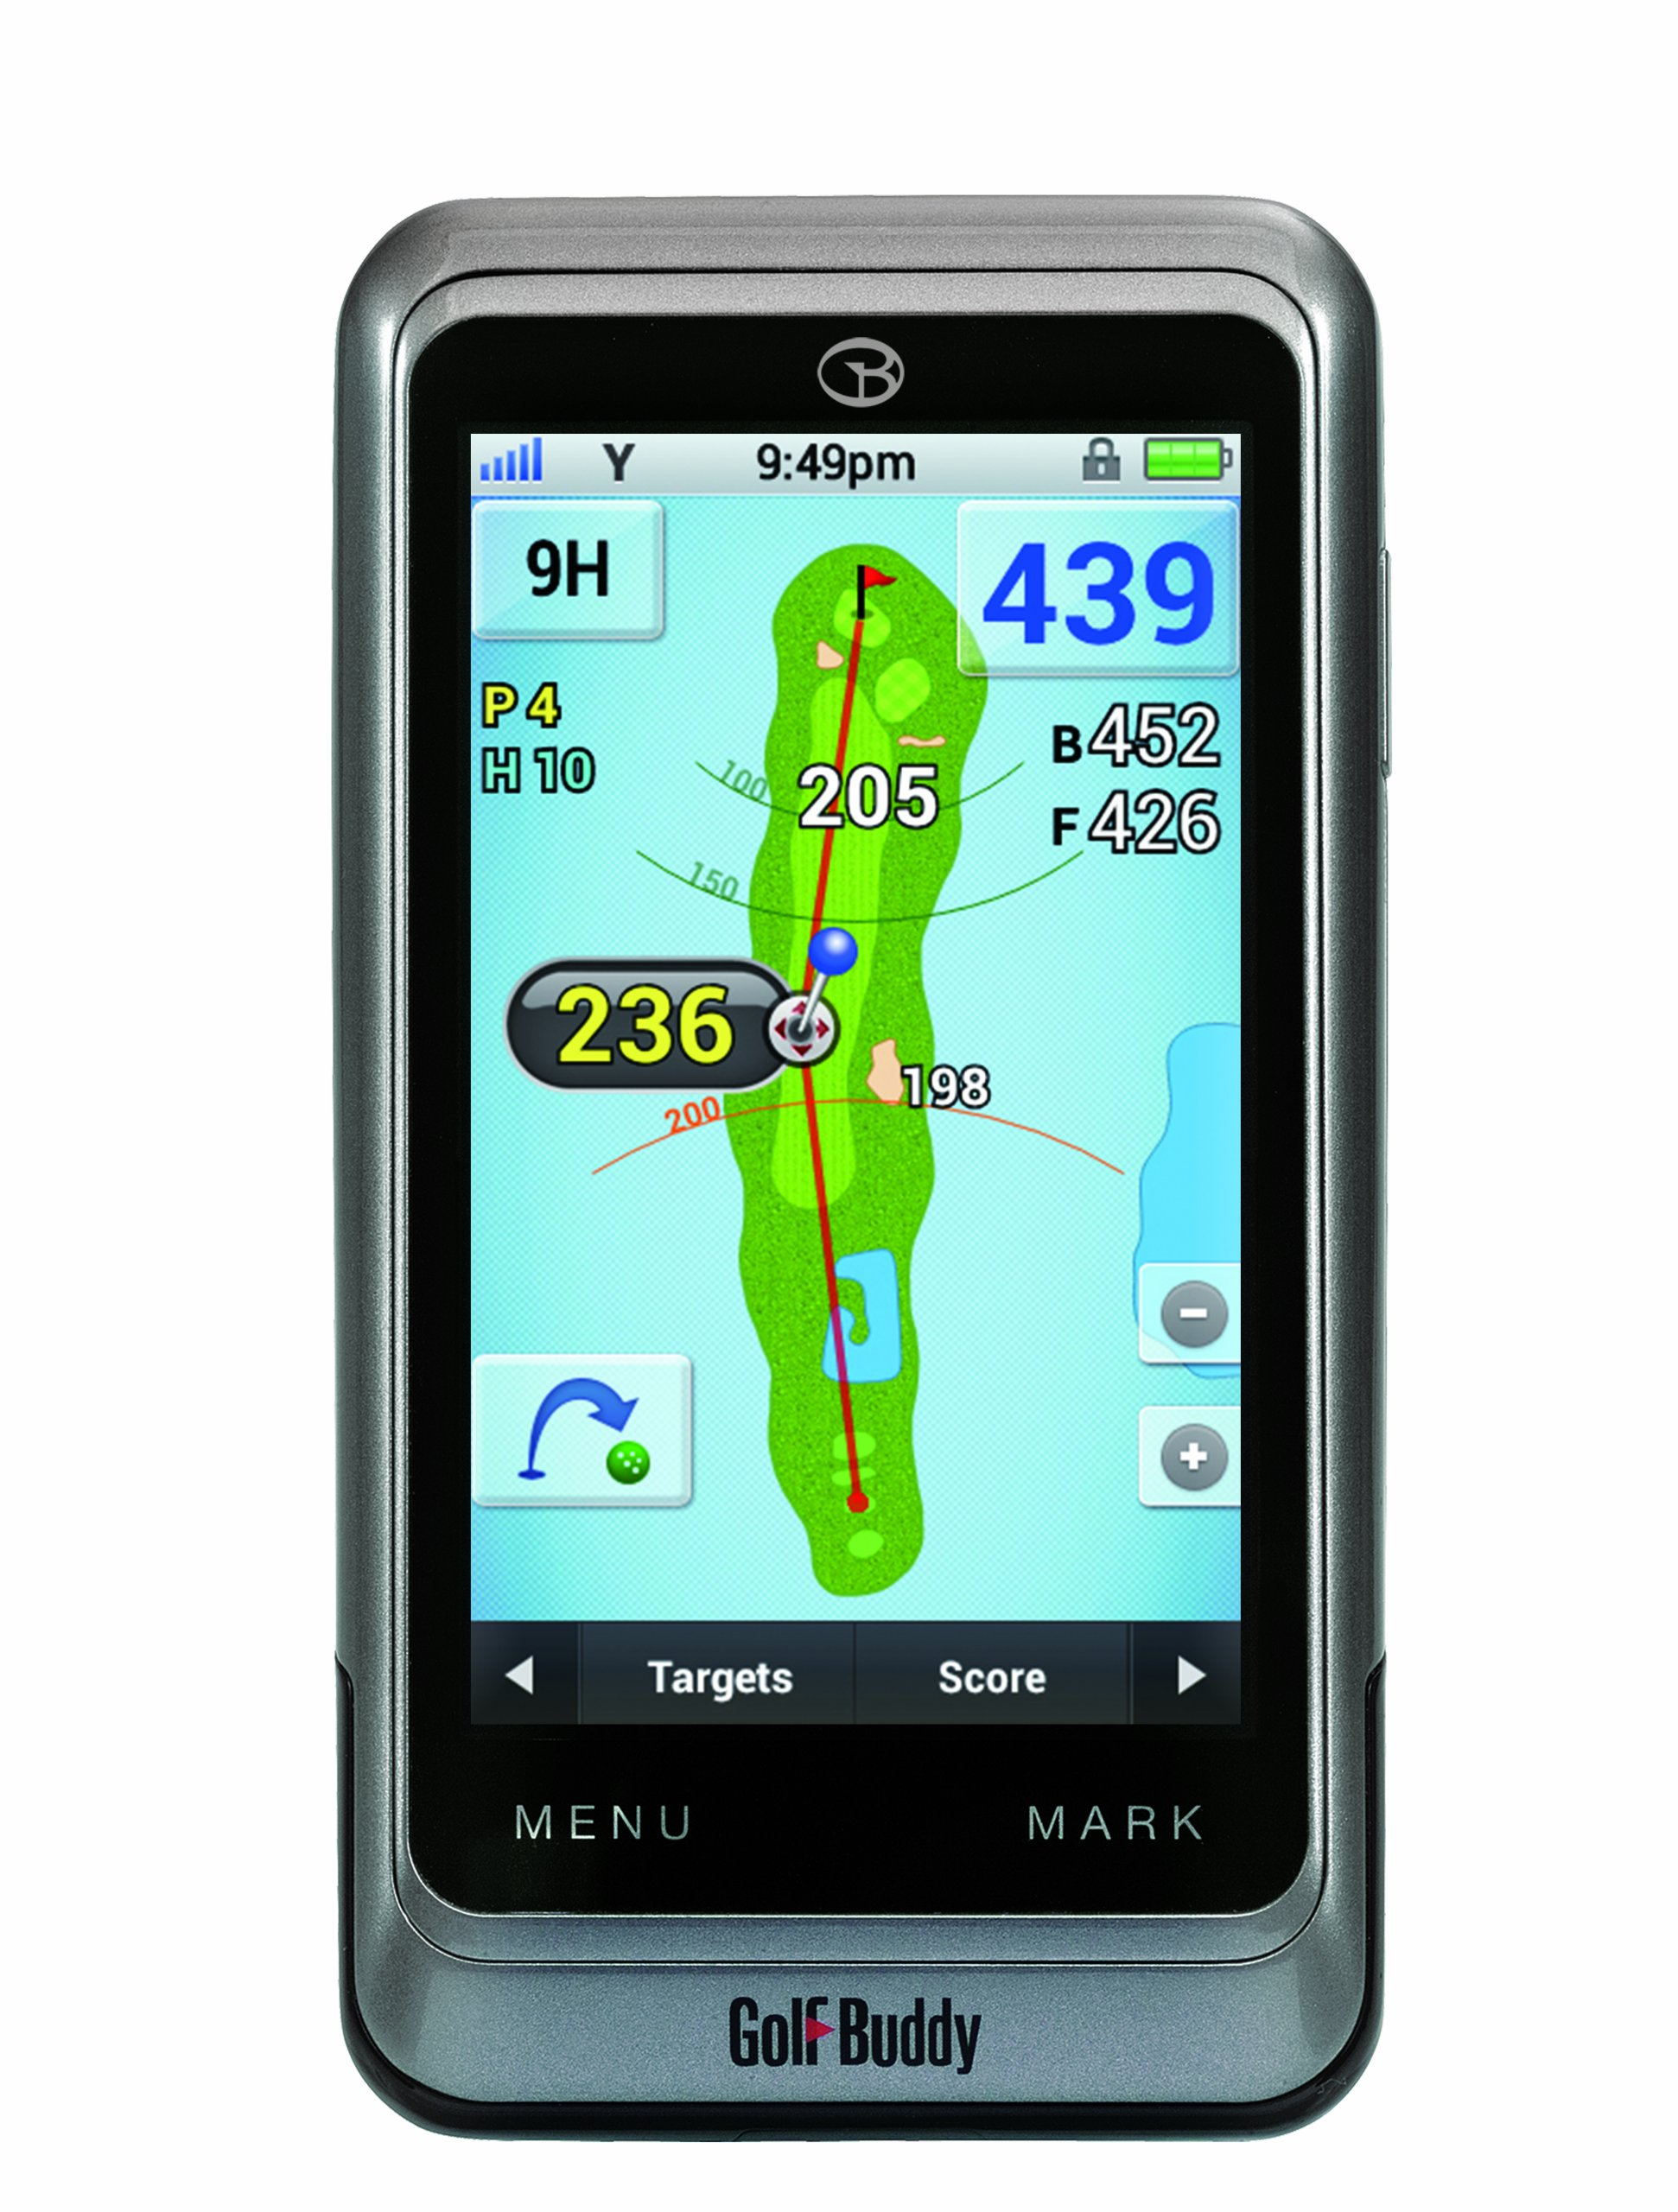 GolfBuddy GB3-PT4 Golf GPS/Rangefinder, Silver, Adjustable by GolfBuddy (Image #1)